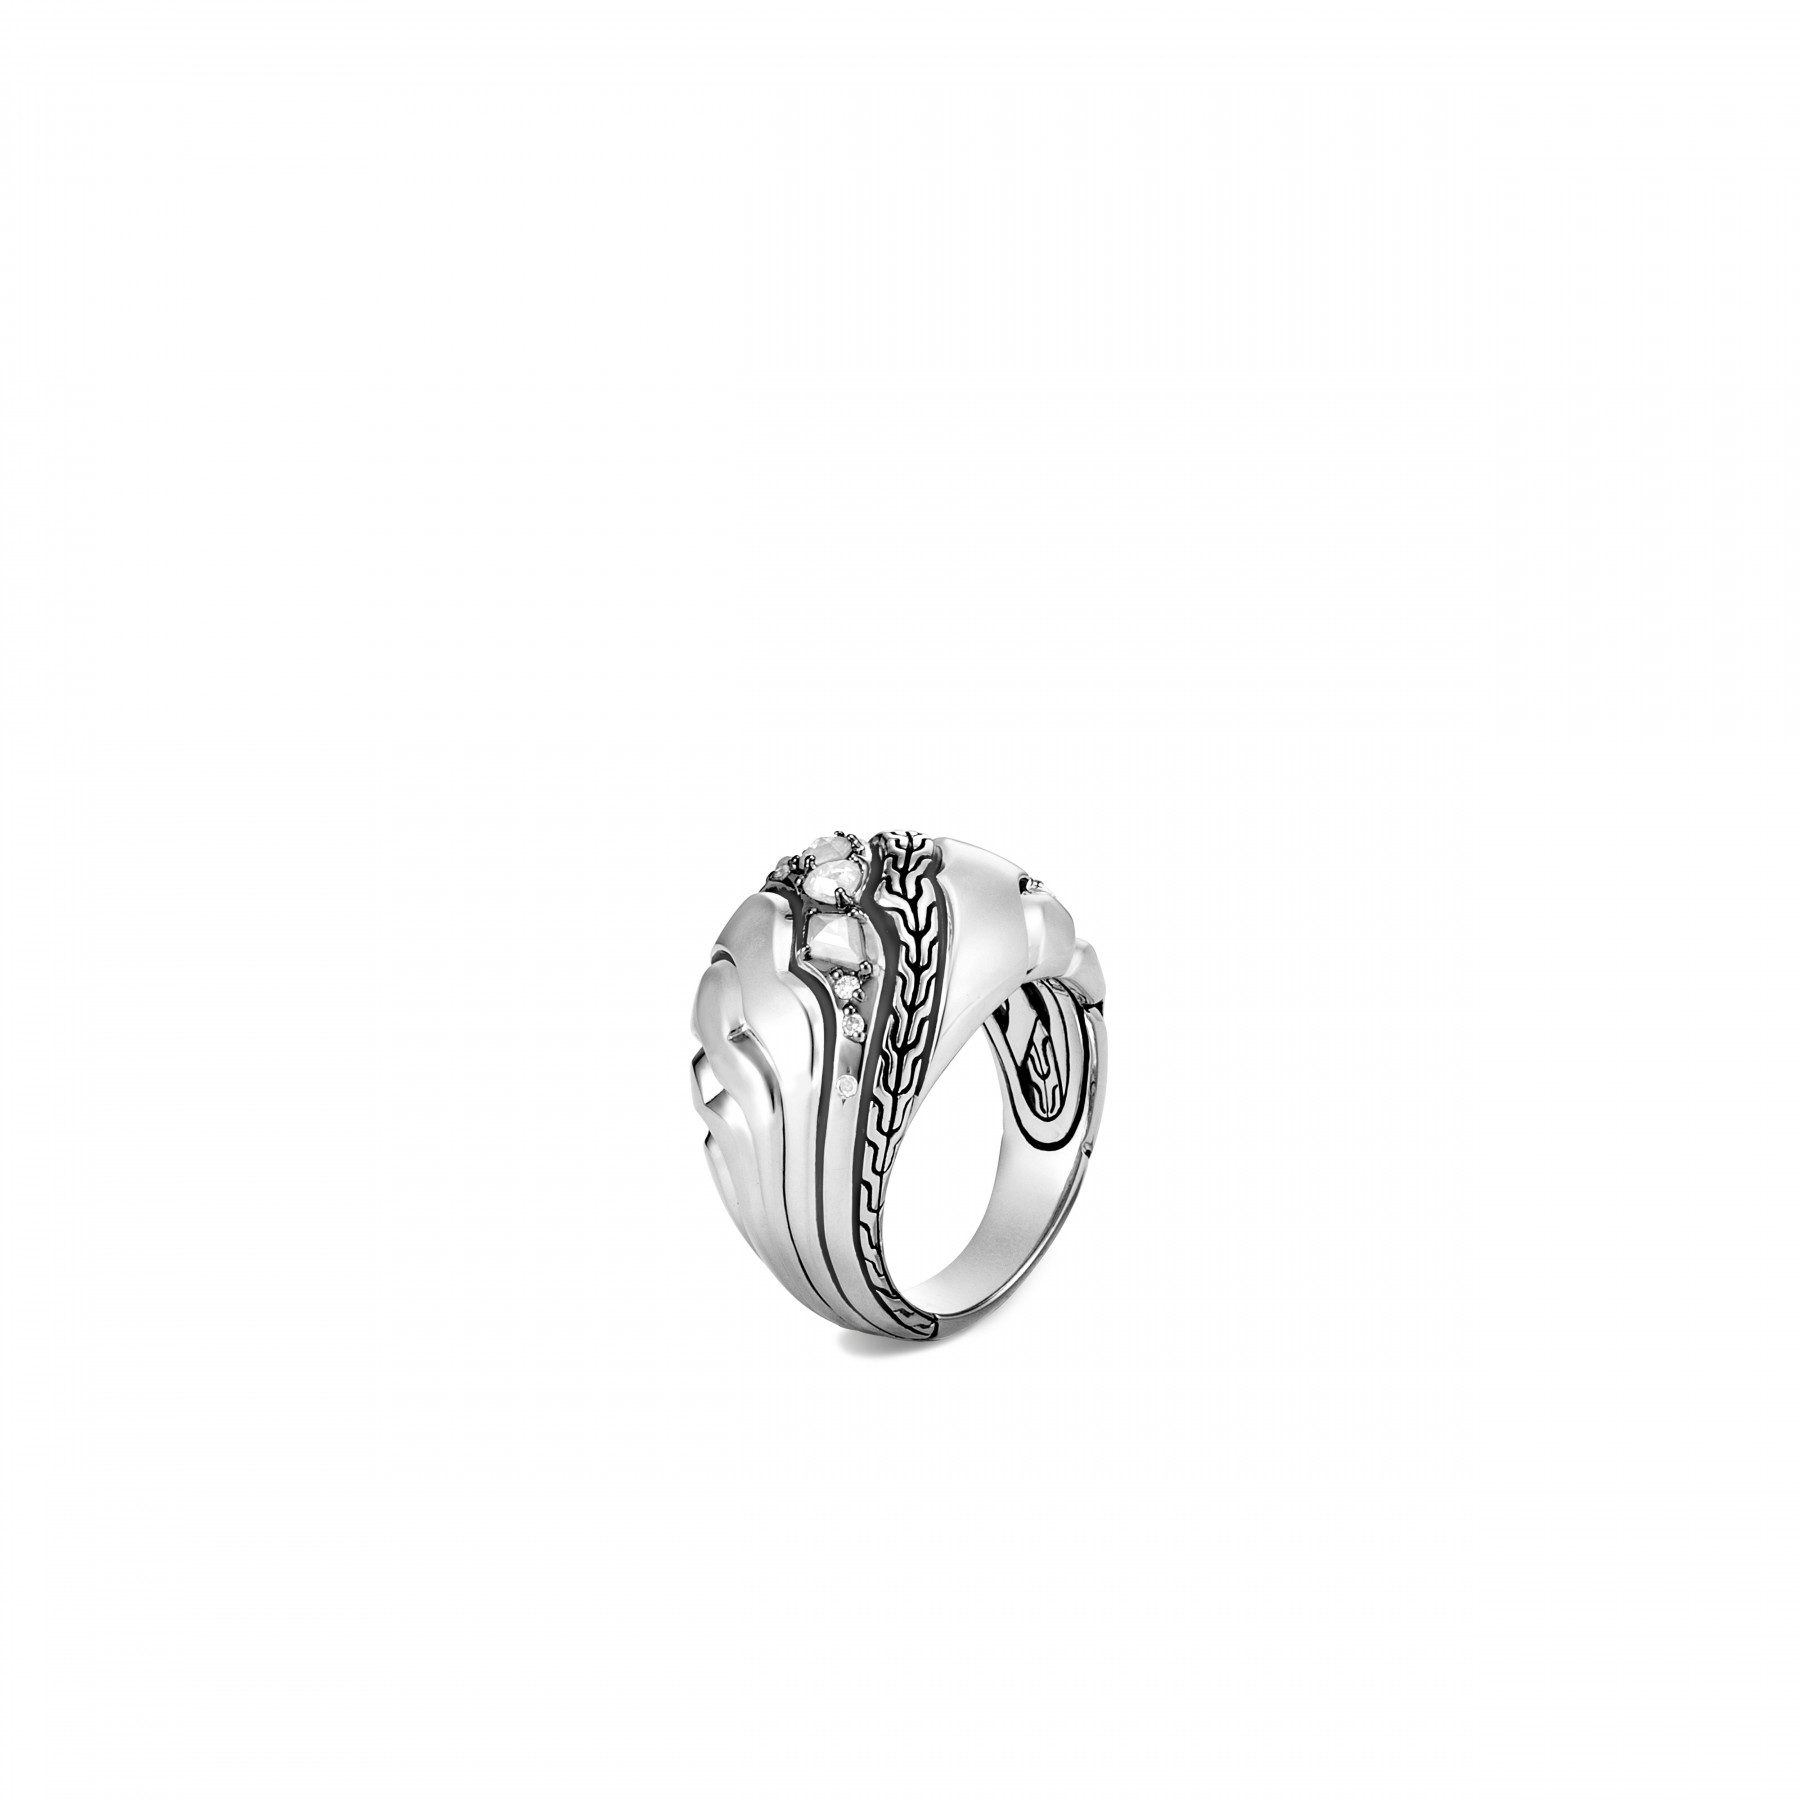 John Hardy Lahar White and Grey Diamond Dome Ring front view